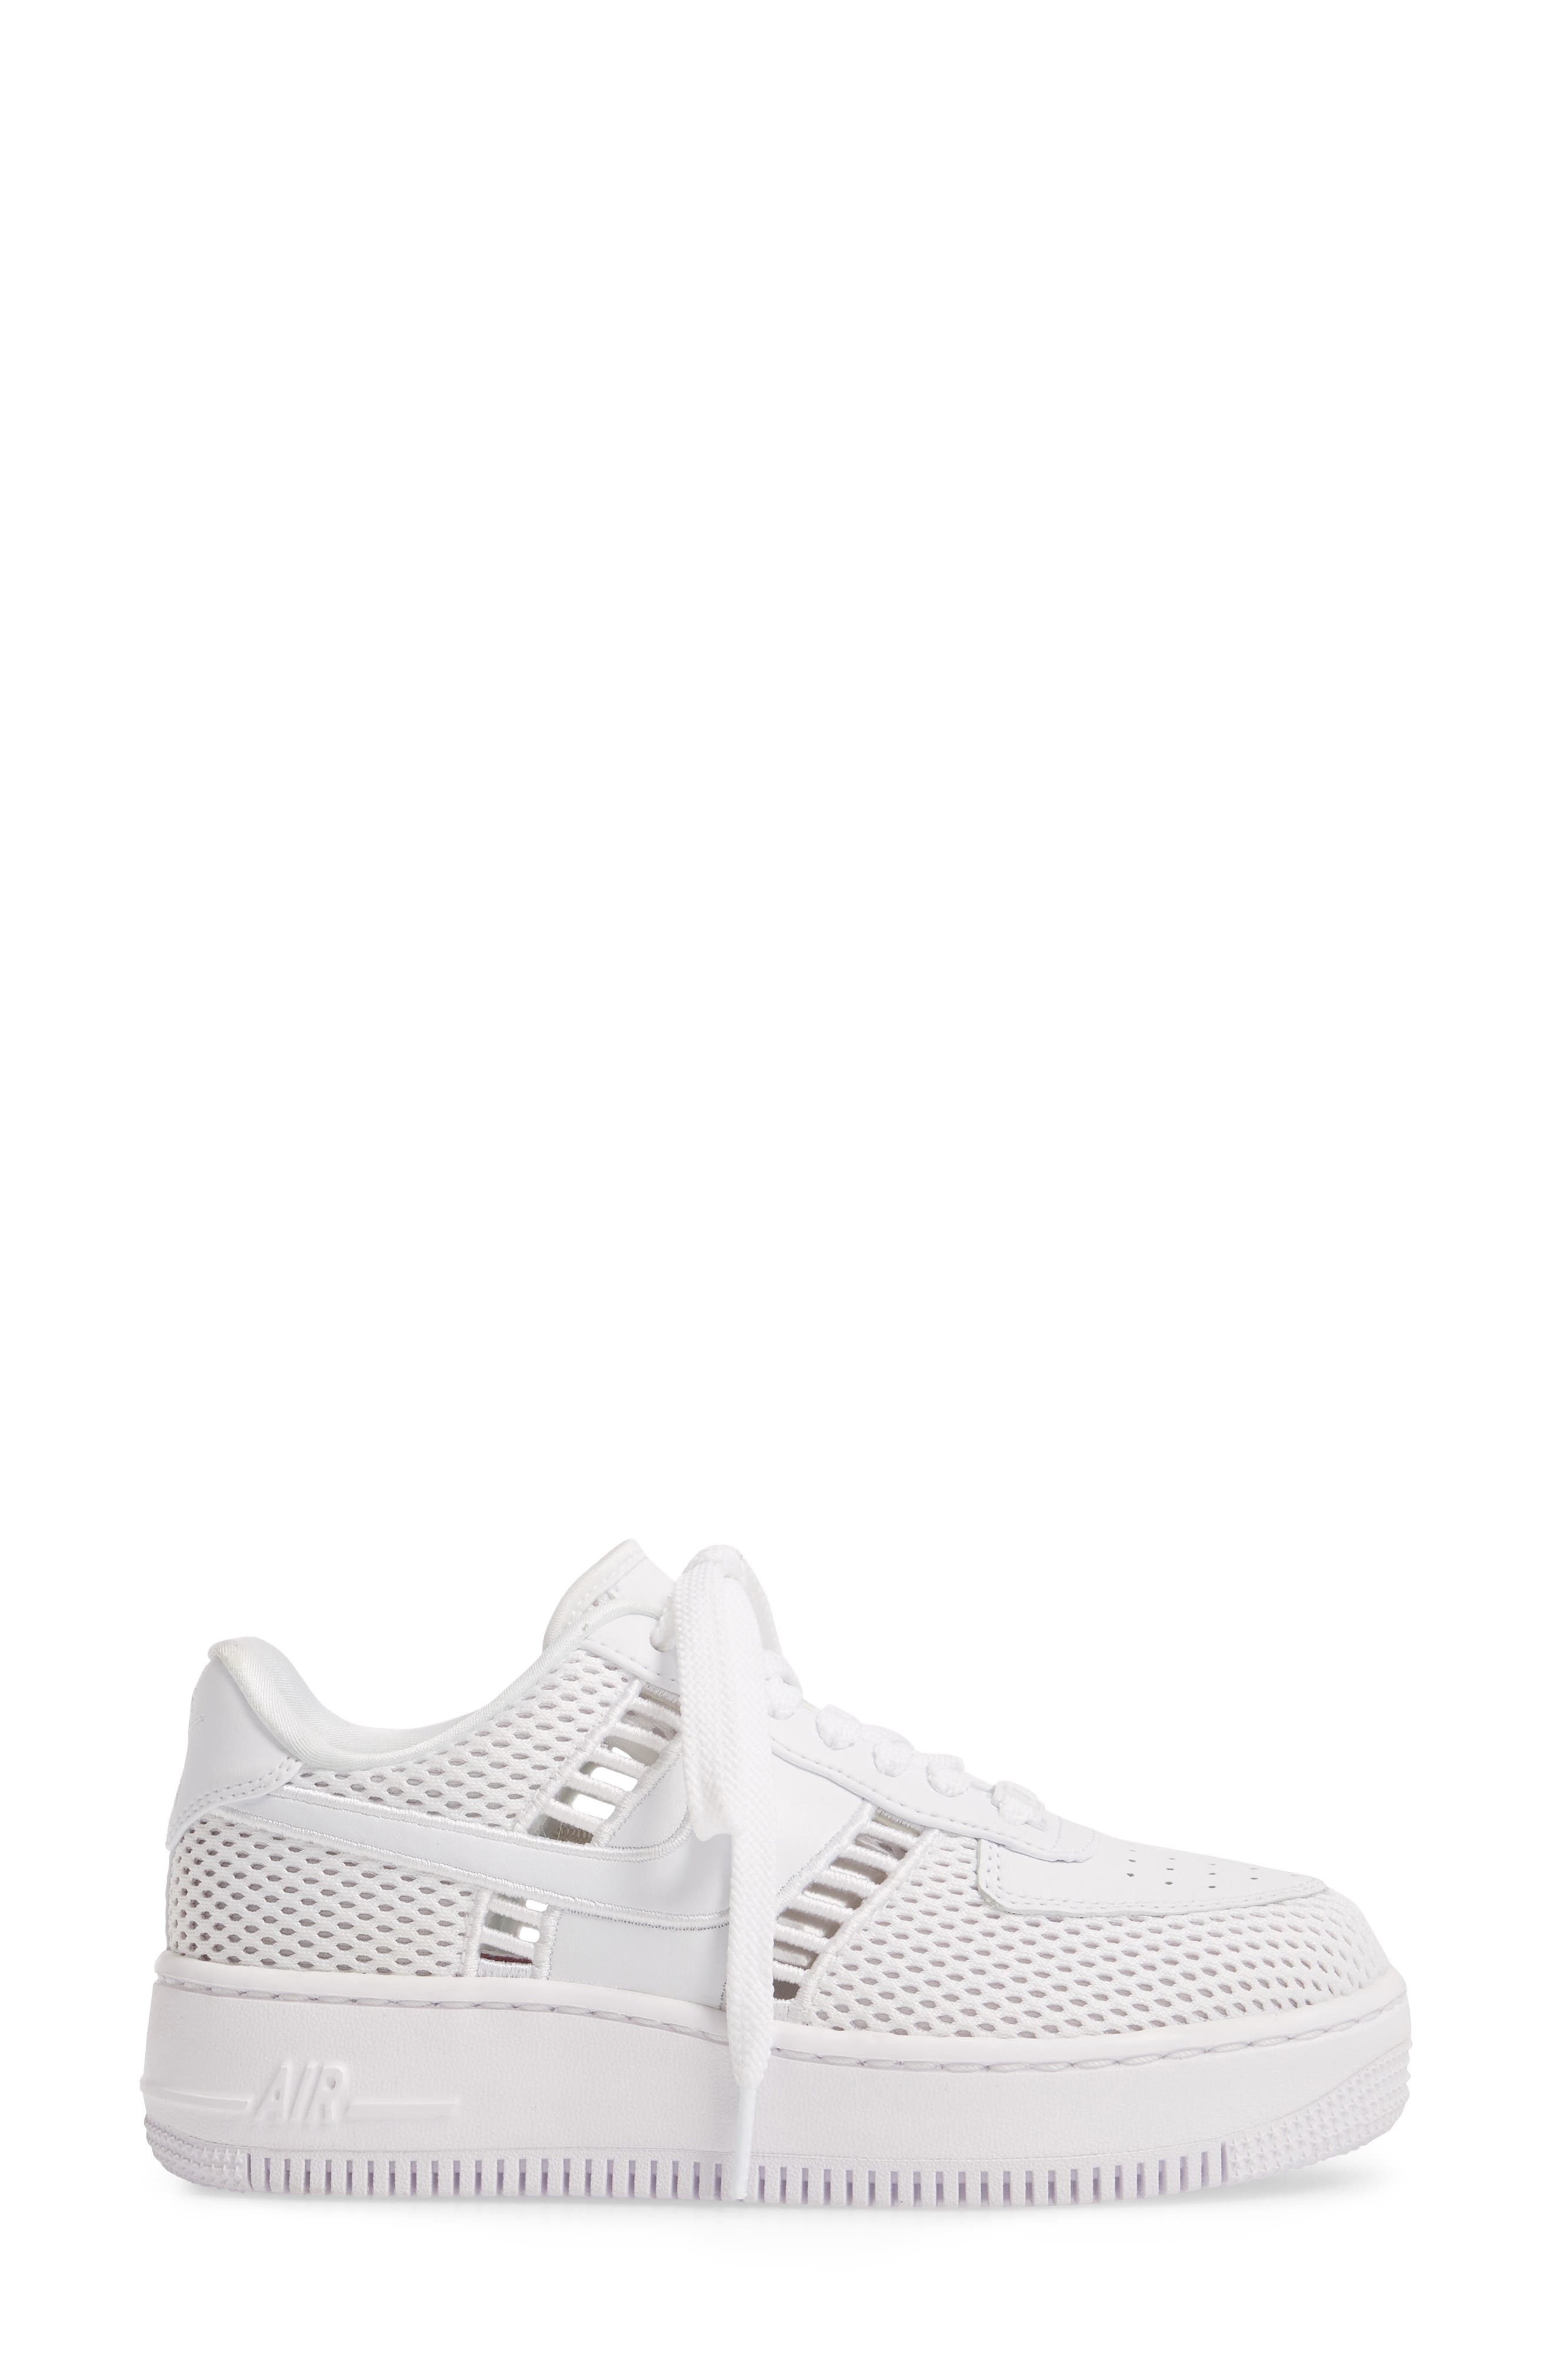 Air Force 1 Upstep SI Mesh Sneaker,                             Alternate thumbnail 3, color,                             100